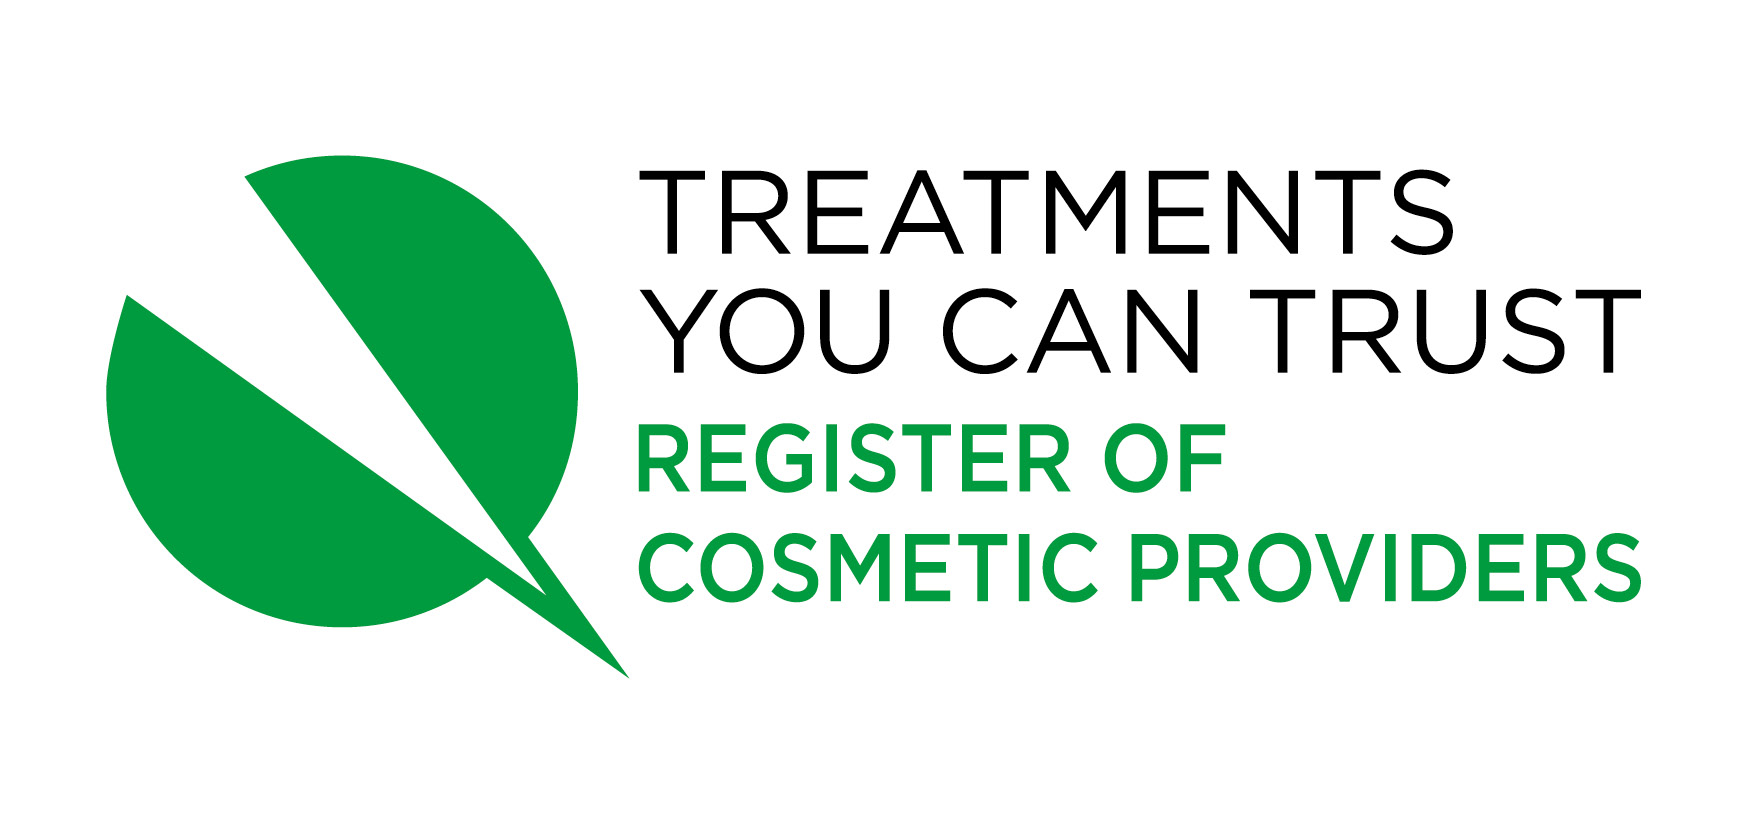 treatments-you-can-trust-logo